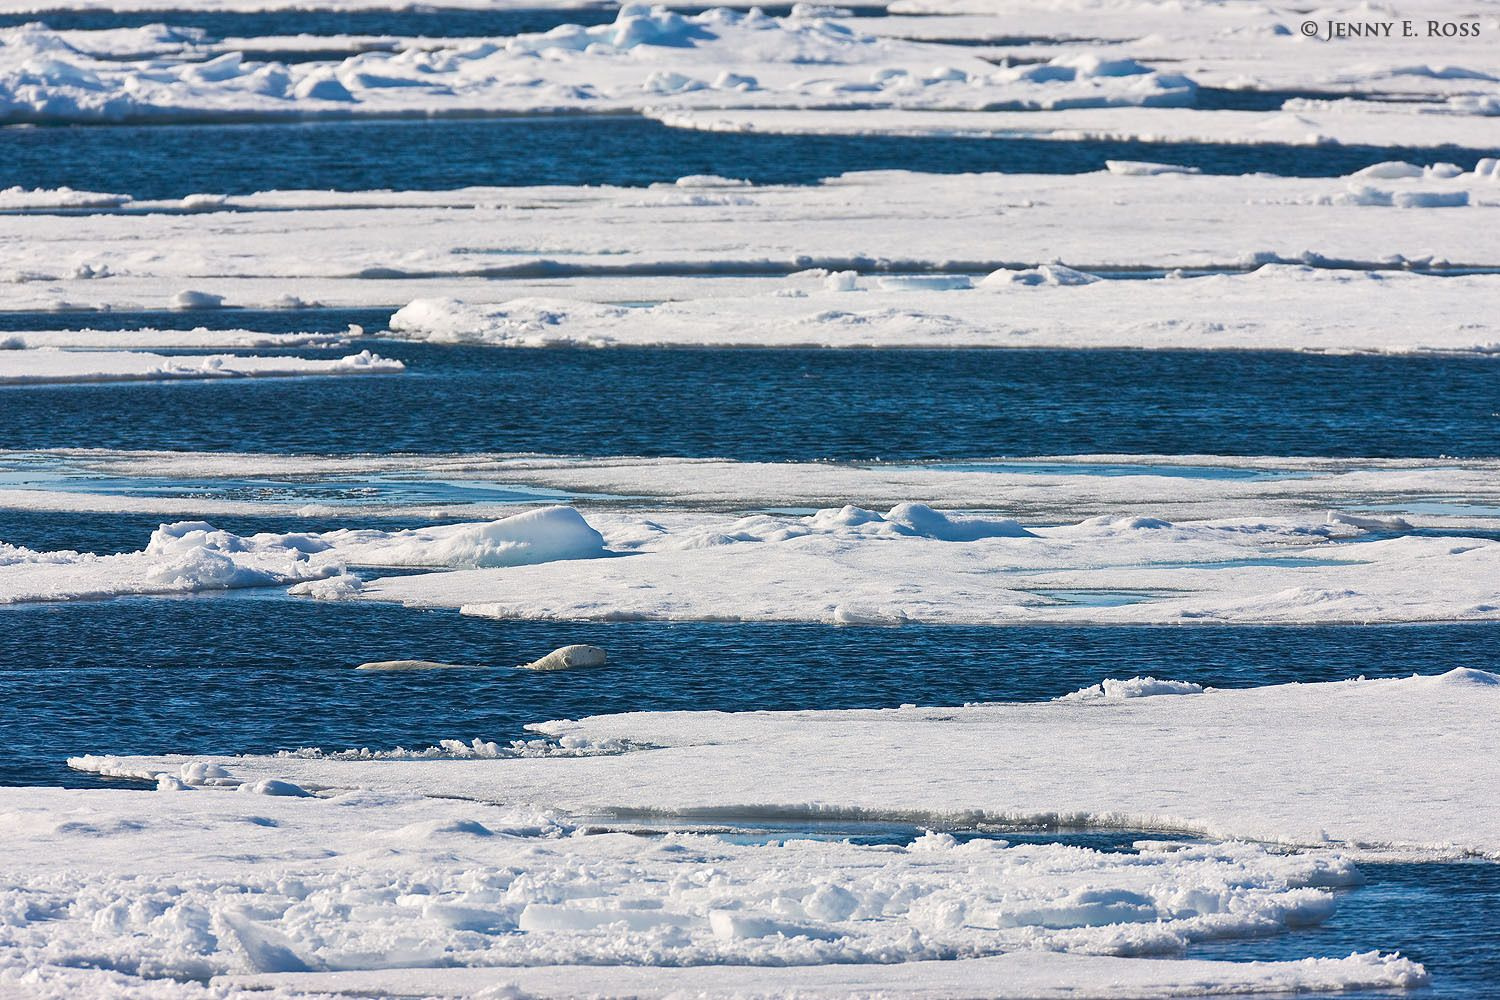 Adult polar bear (Ursus maritimus) swimming in an open lead between floes of sea ice.